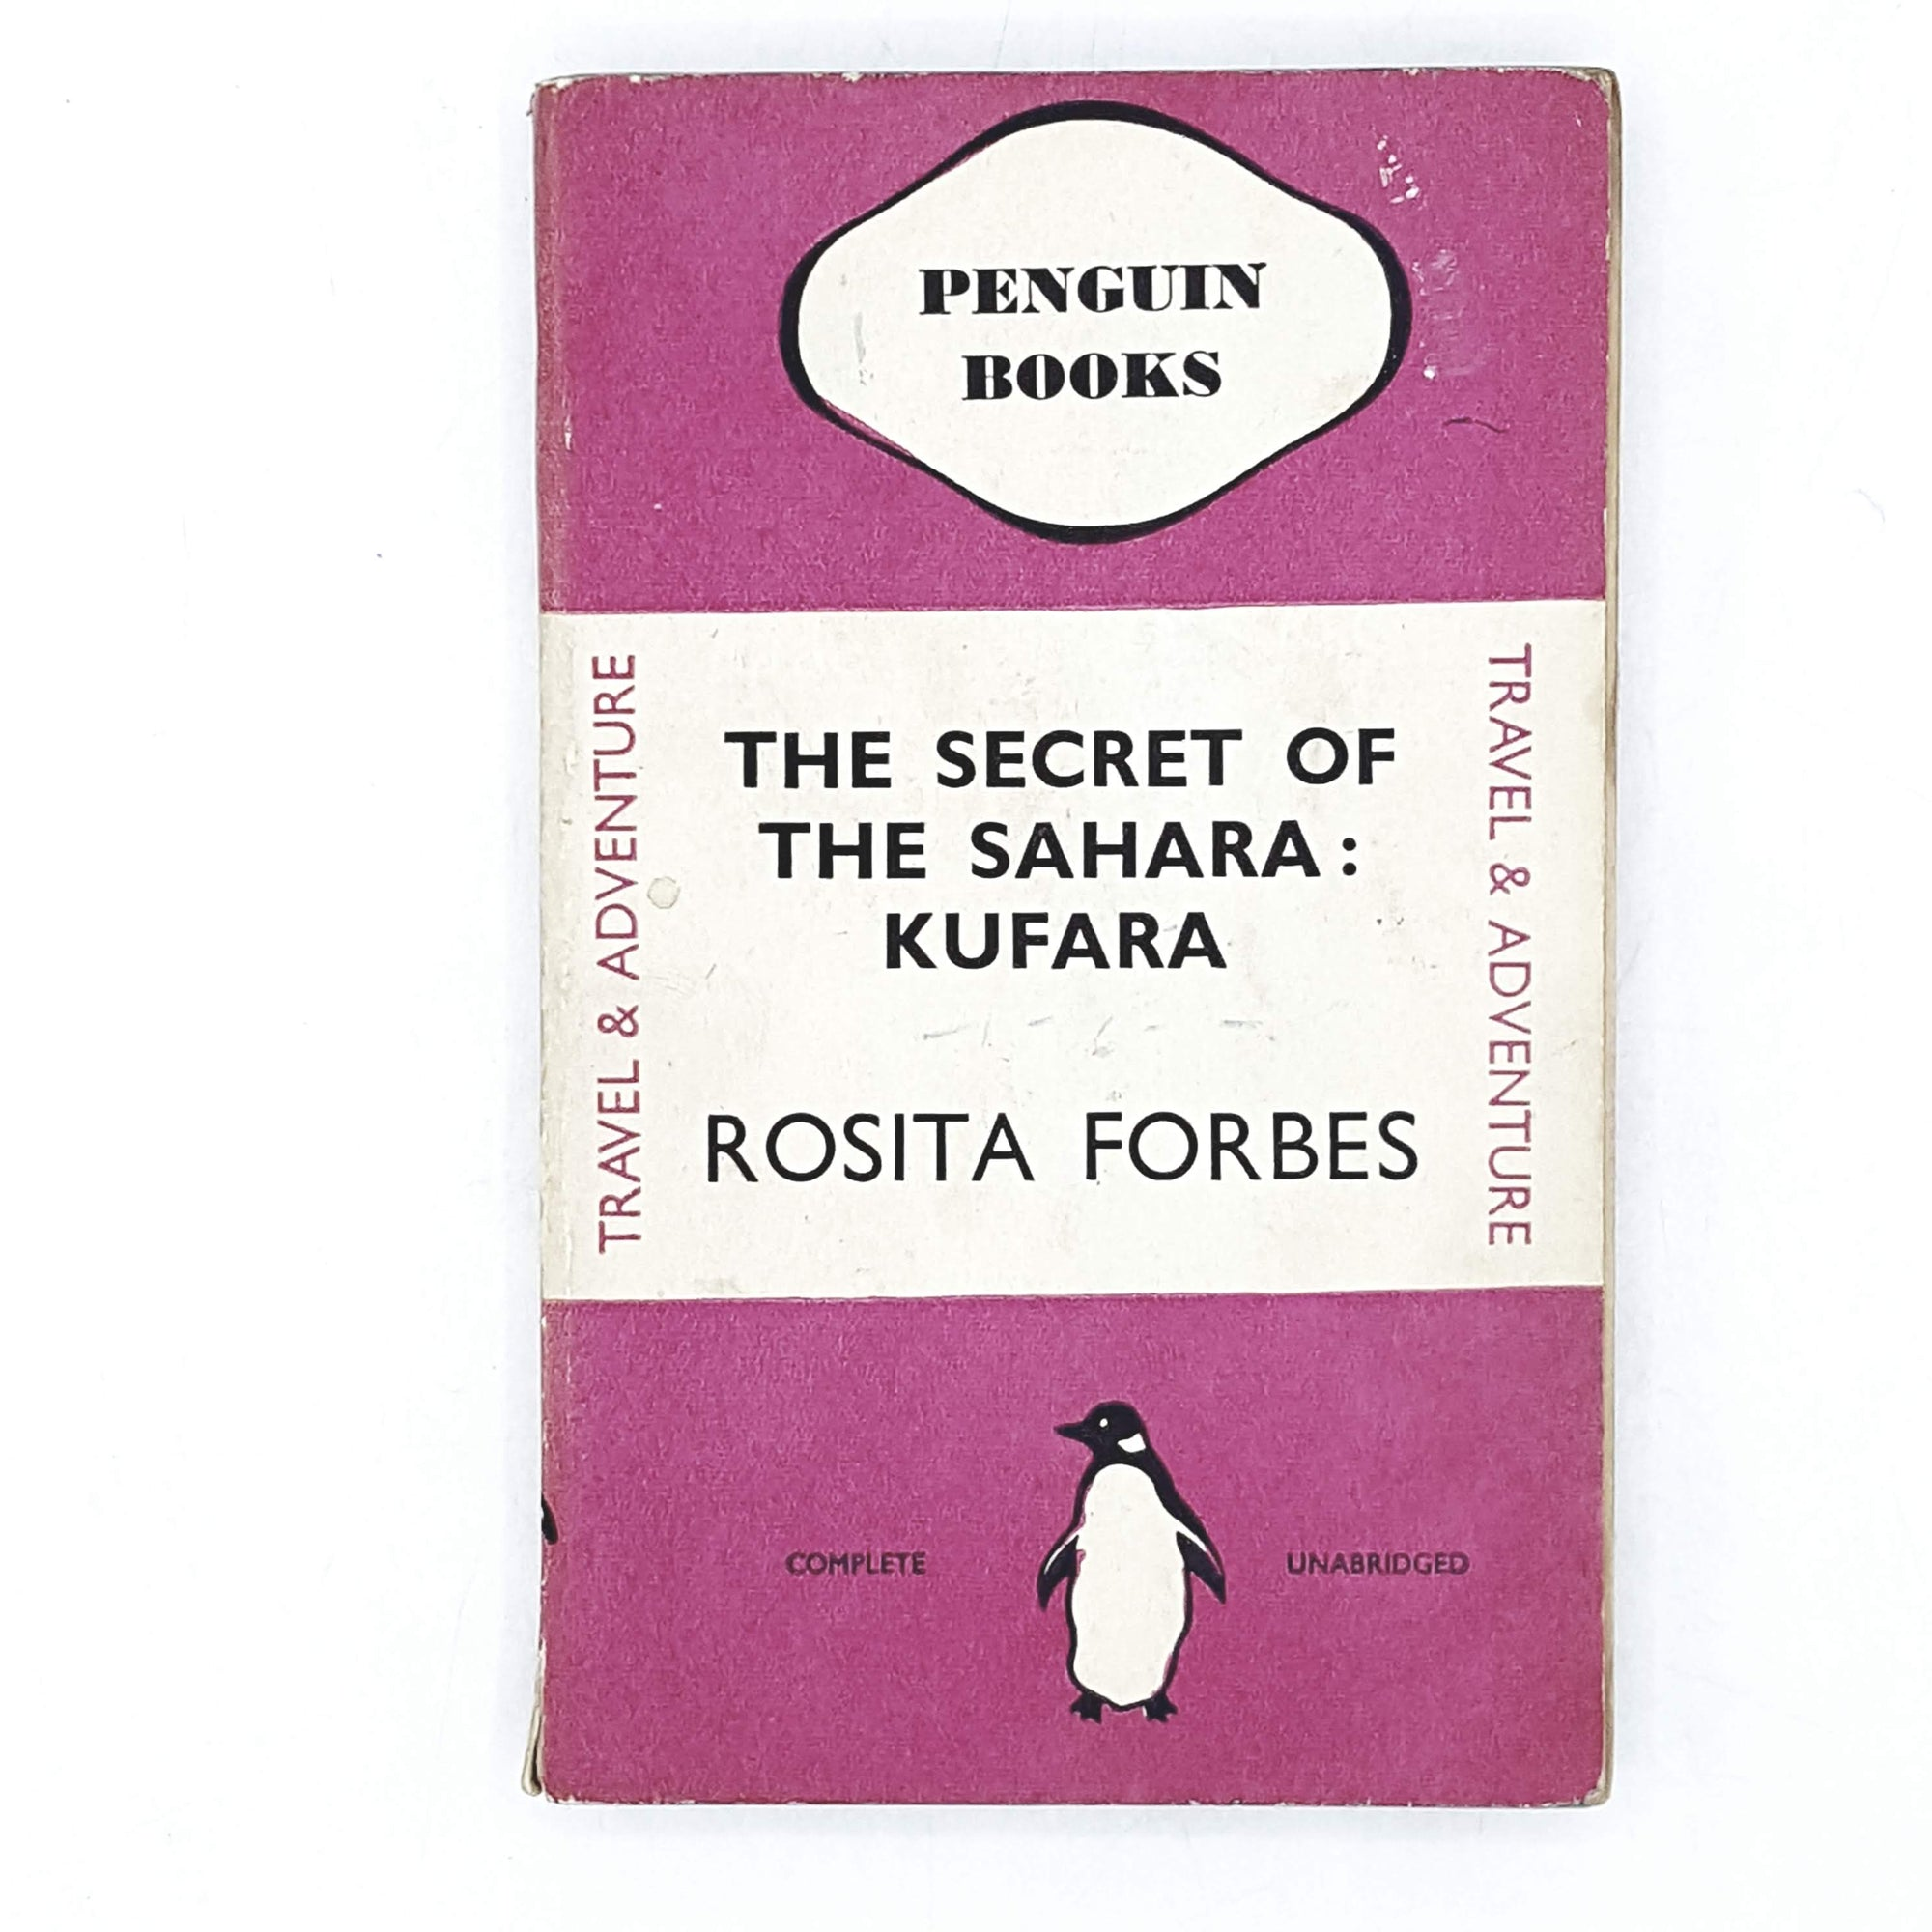 Vintage Penguin The Secret of the Sahara: Kufara by Rosita Forbes 1937